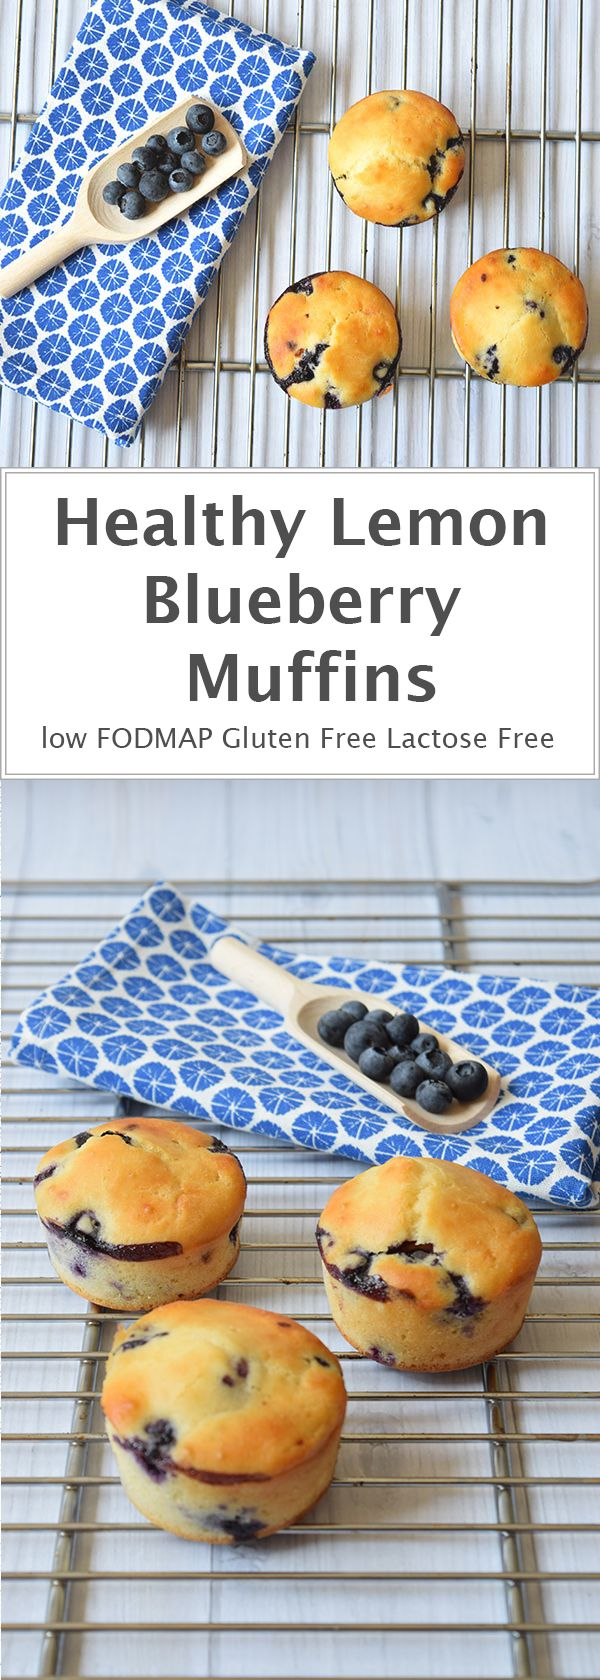 Delicious lemon blueberry muffins. Only 141 calories a piece! Low FODMAP…